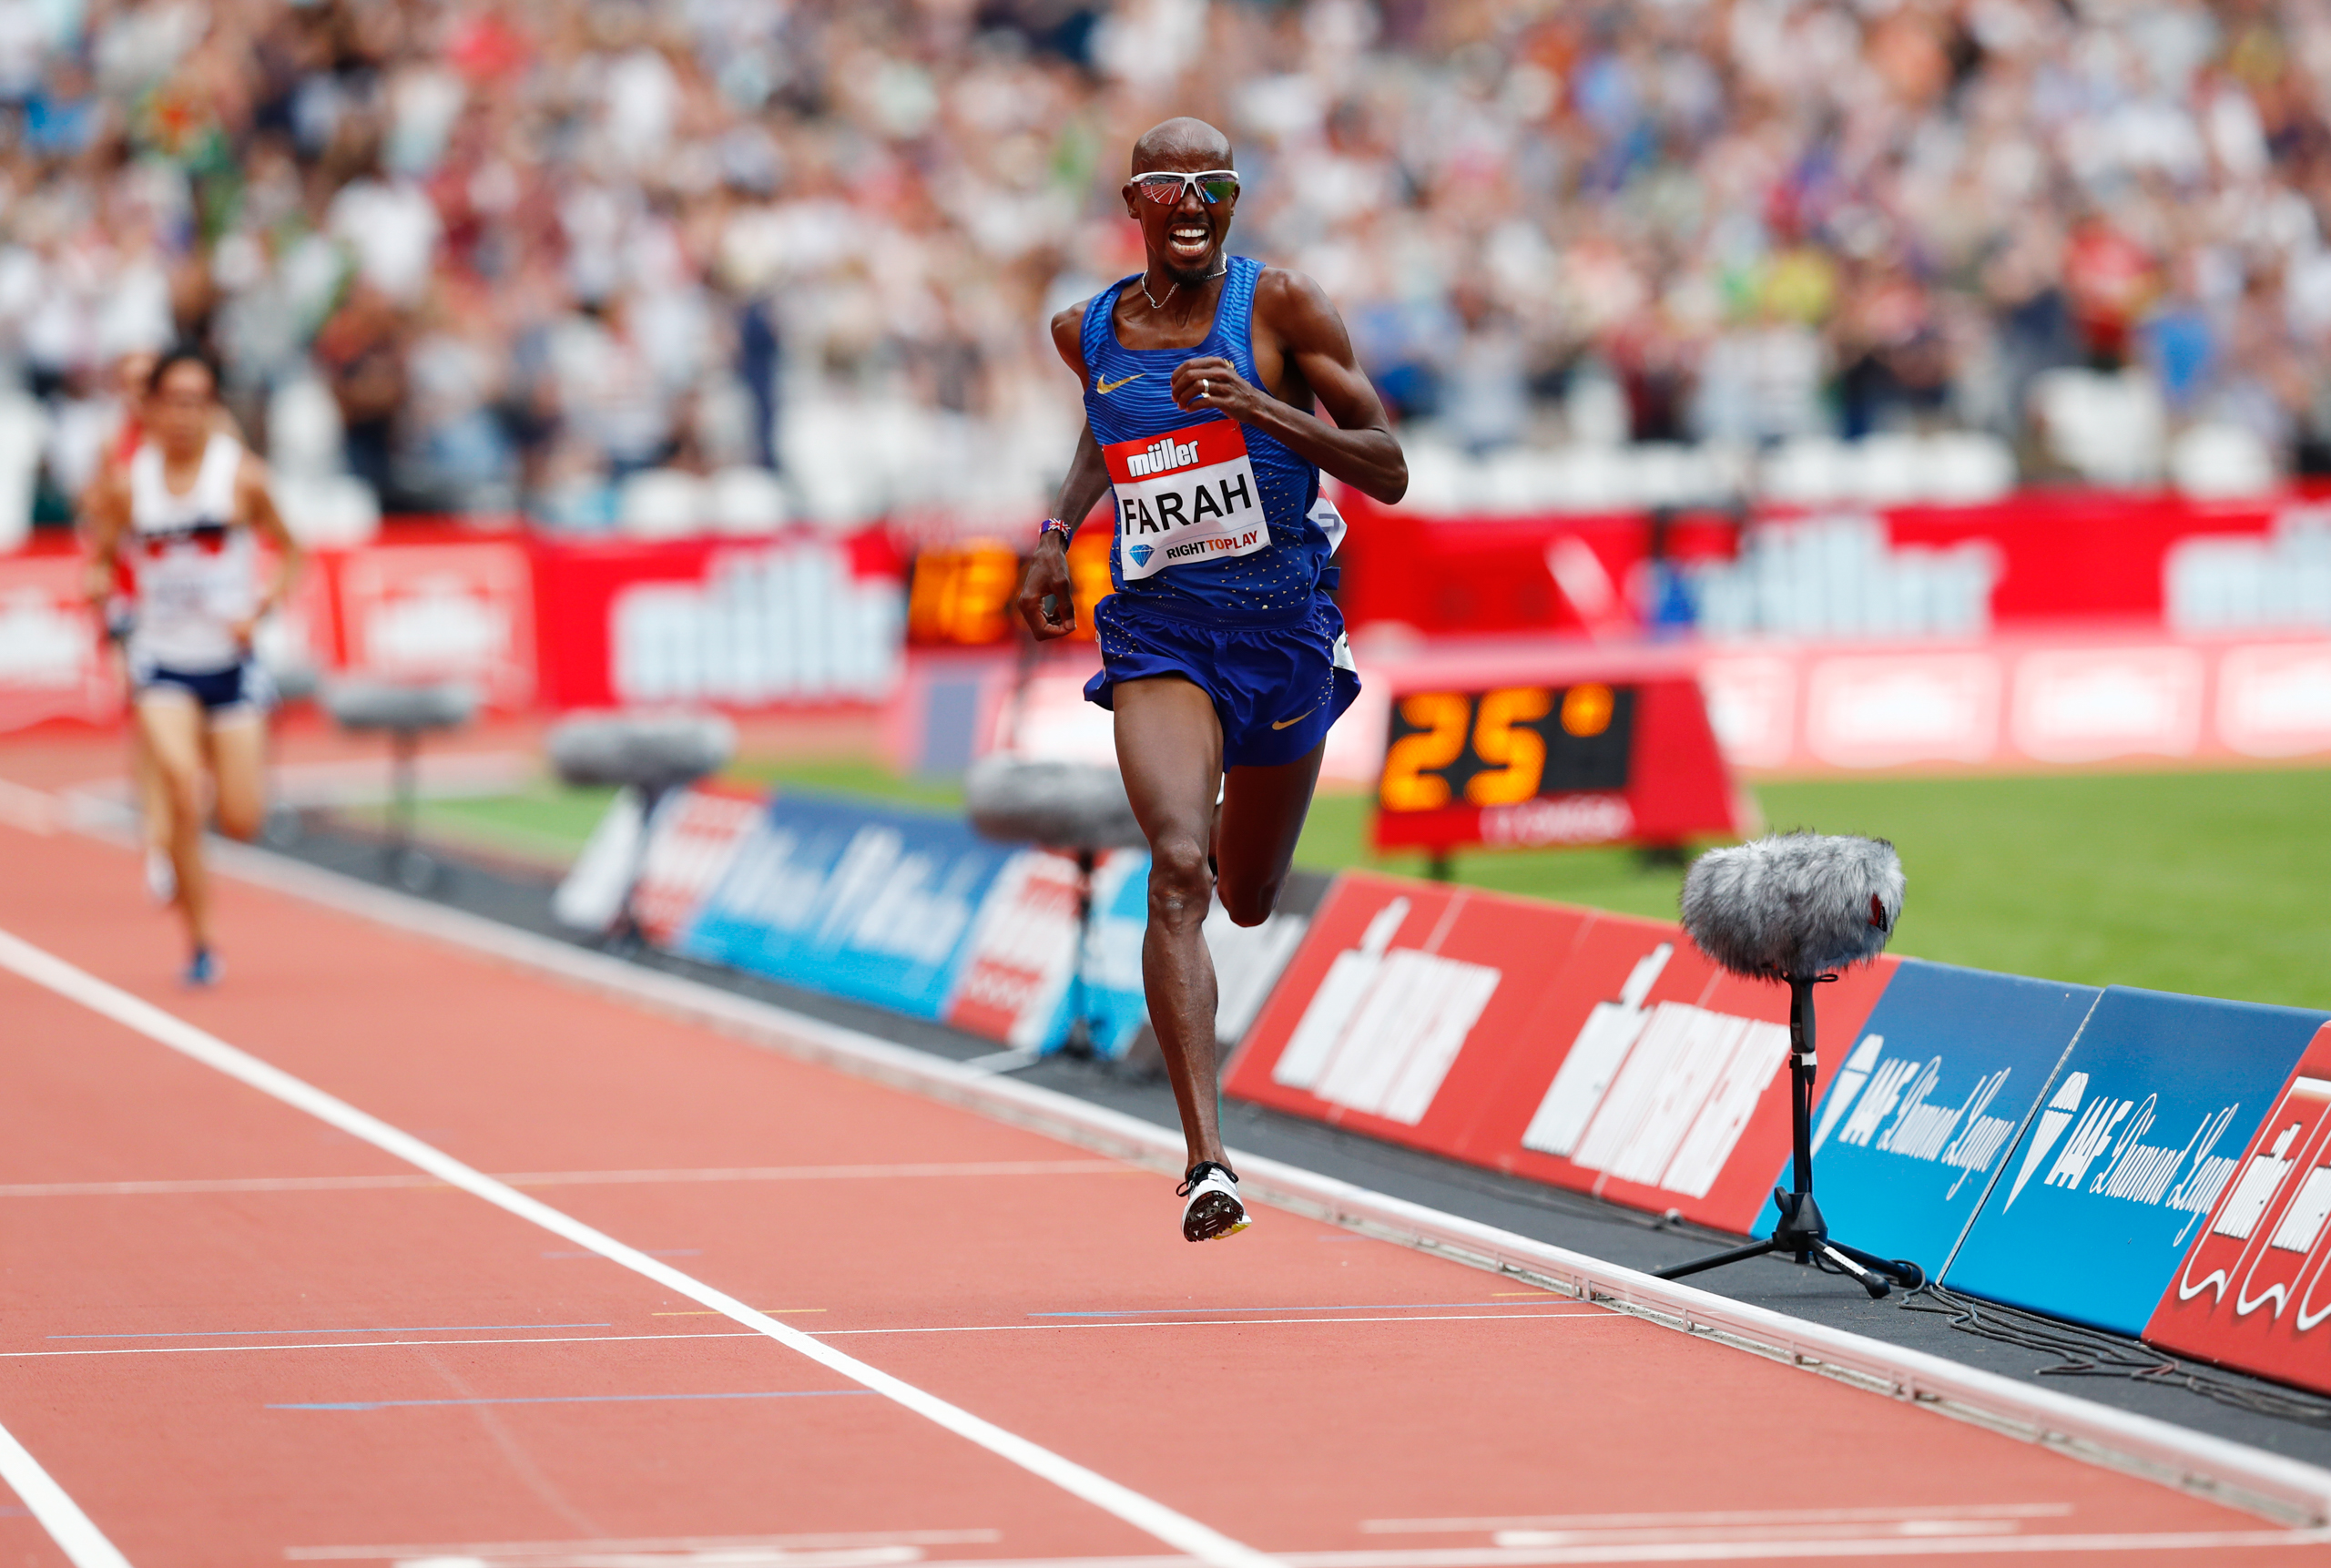 <strong>Mo Farah, Track and Field, UK</strong>Farah electrified London with his 5,000-m/10,000-m double gold at the 2012 Games. Last year his coach, Alberto Salazar, was accused of doping athletes. Farah wasn't named, but a similar performance will attract skeptics.